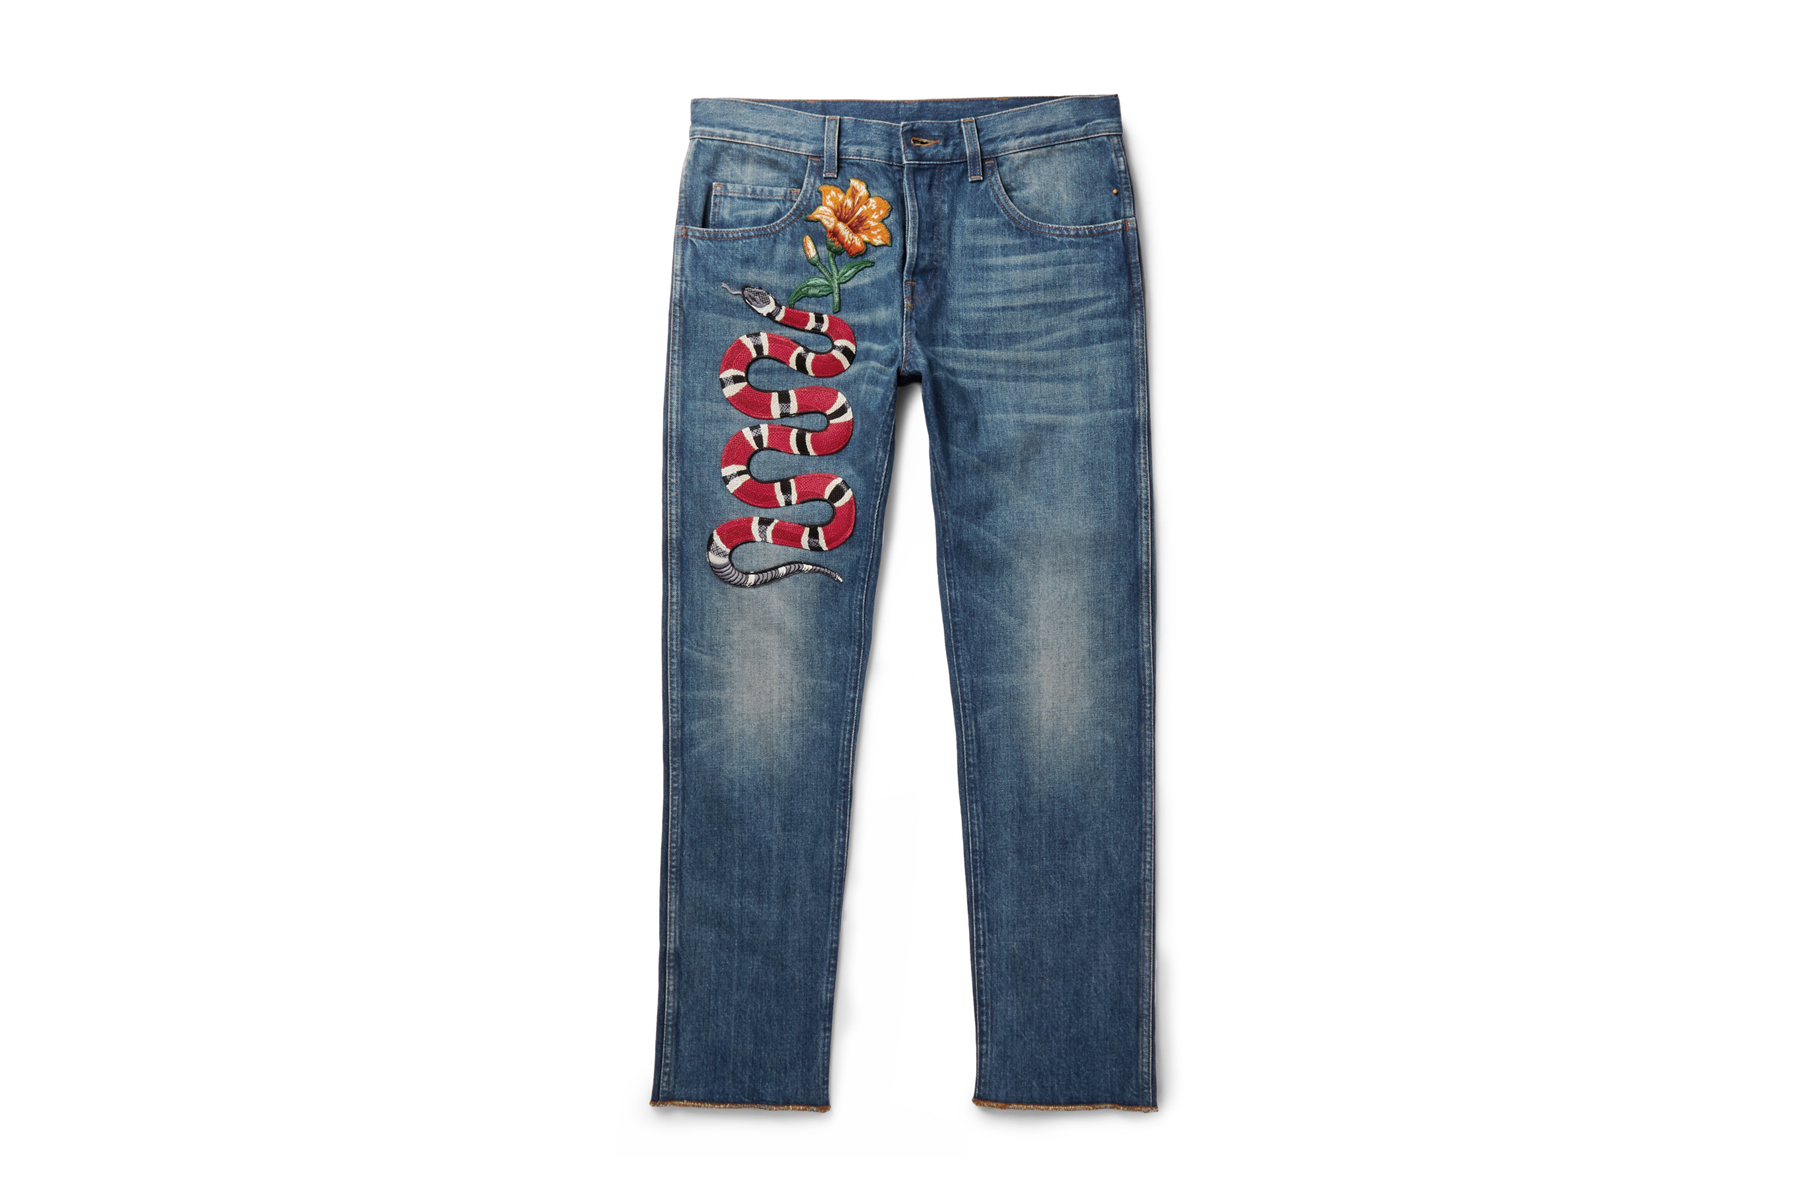 Gucci Goes Retro With These Embroidered Jeans